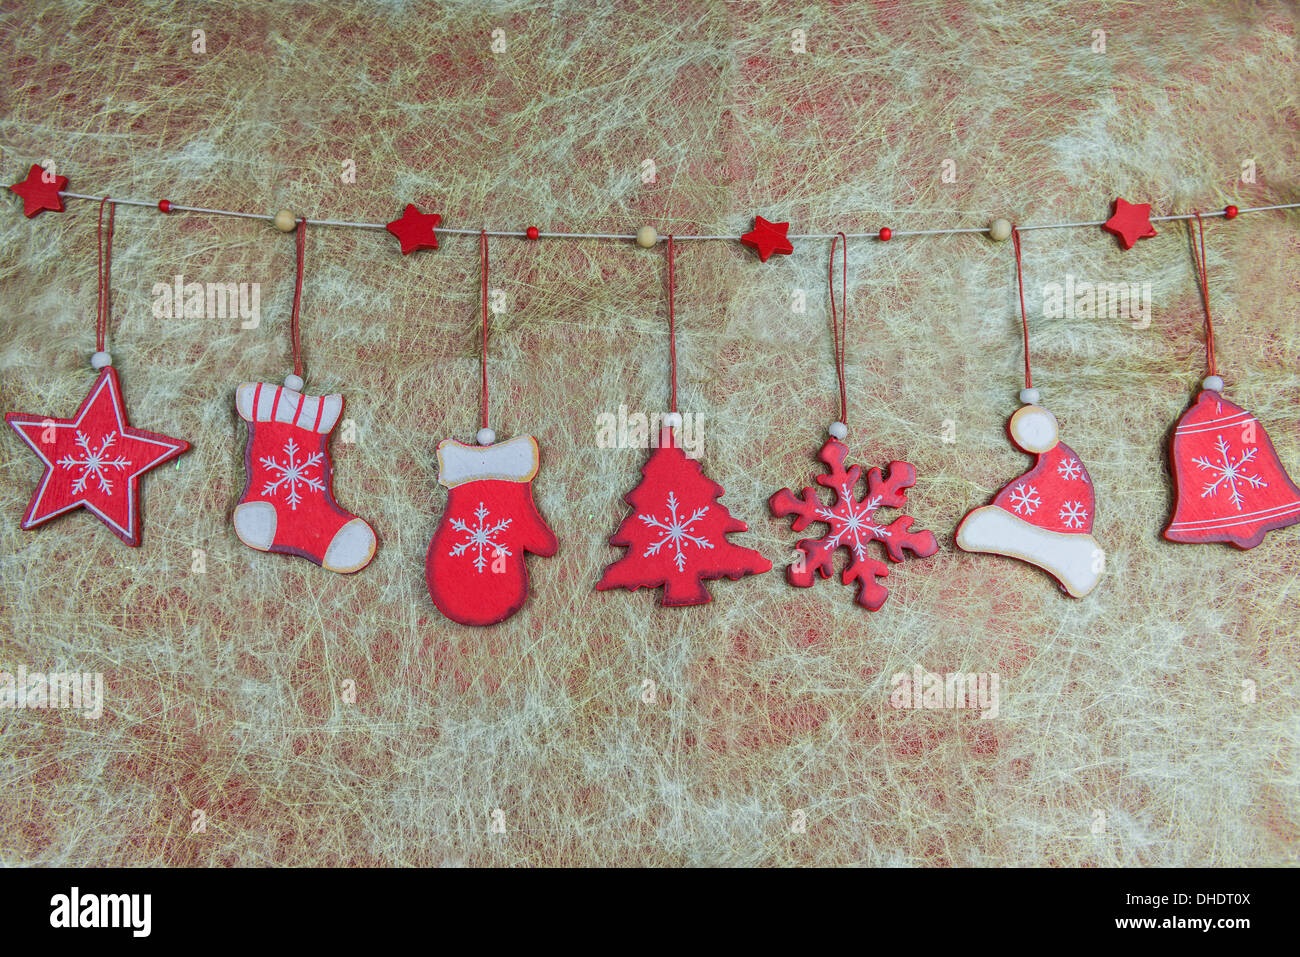 rustic shabby chic christmas decorations hanging against golden background